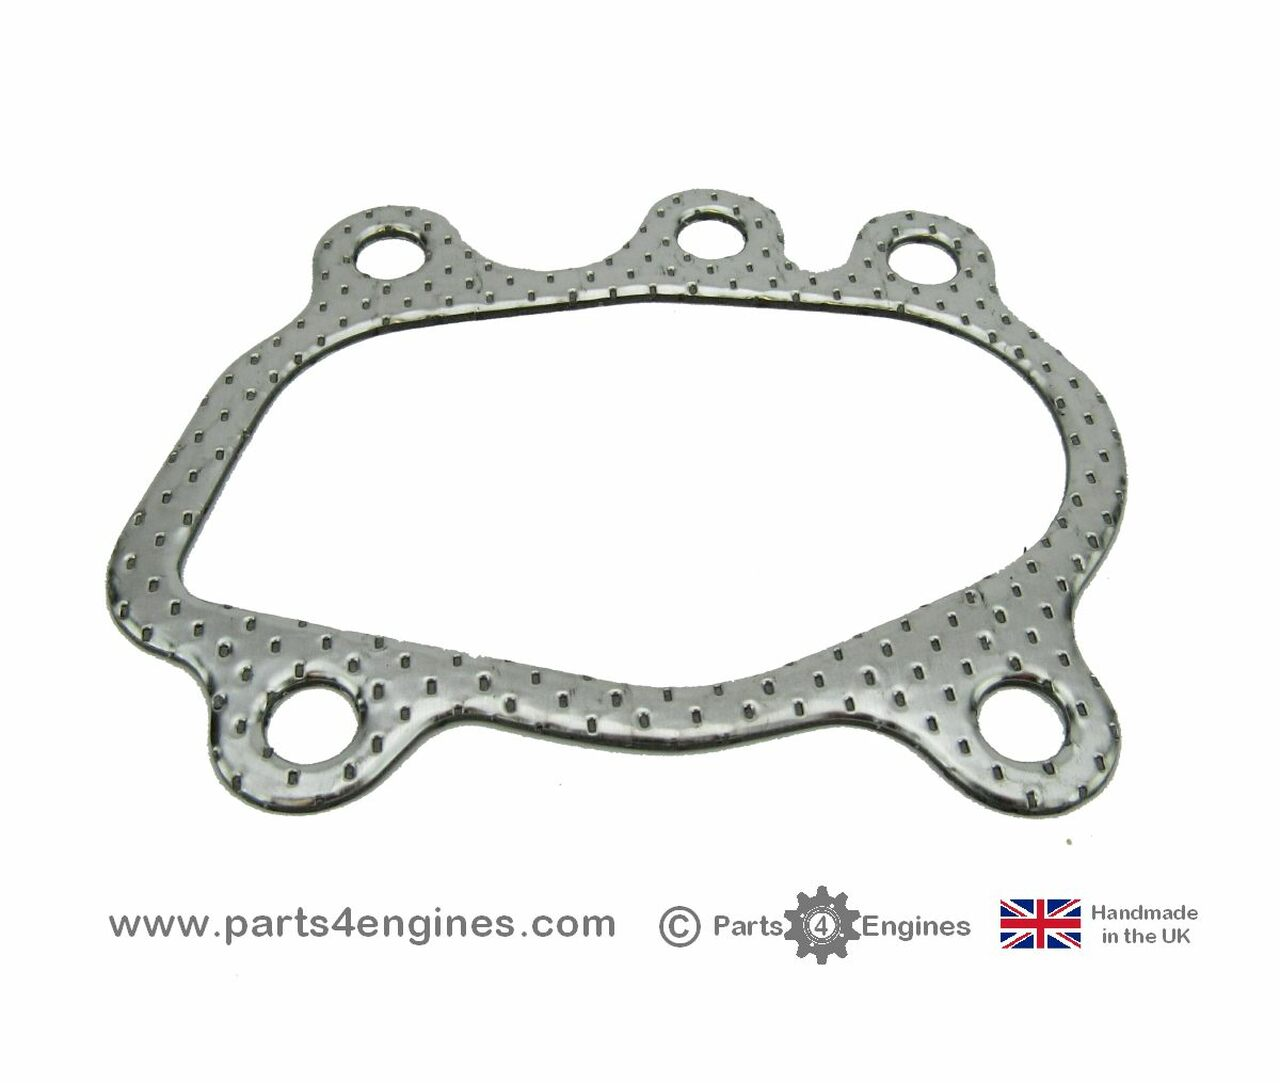 Volvo Penta TAMD22 exhaust outlet gasket - parts4engines.com